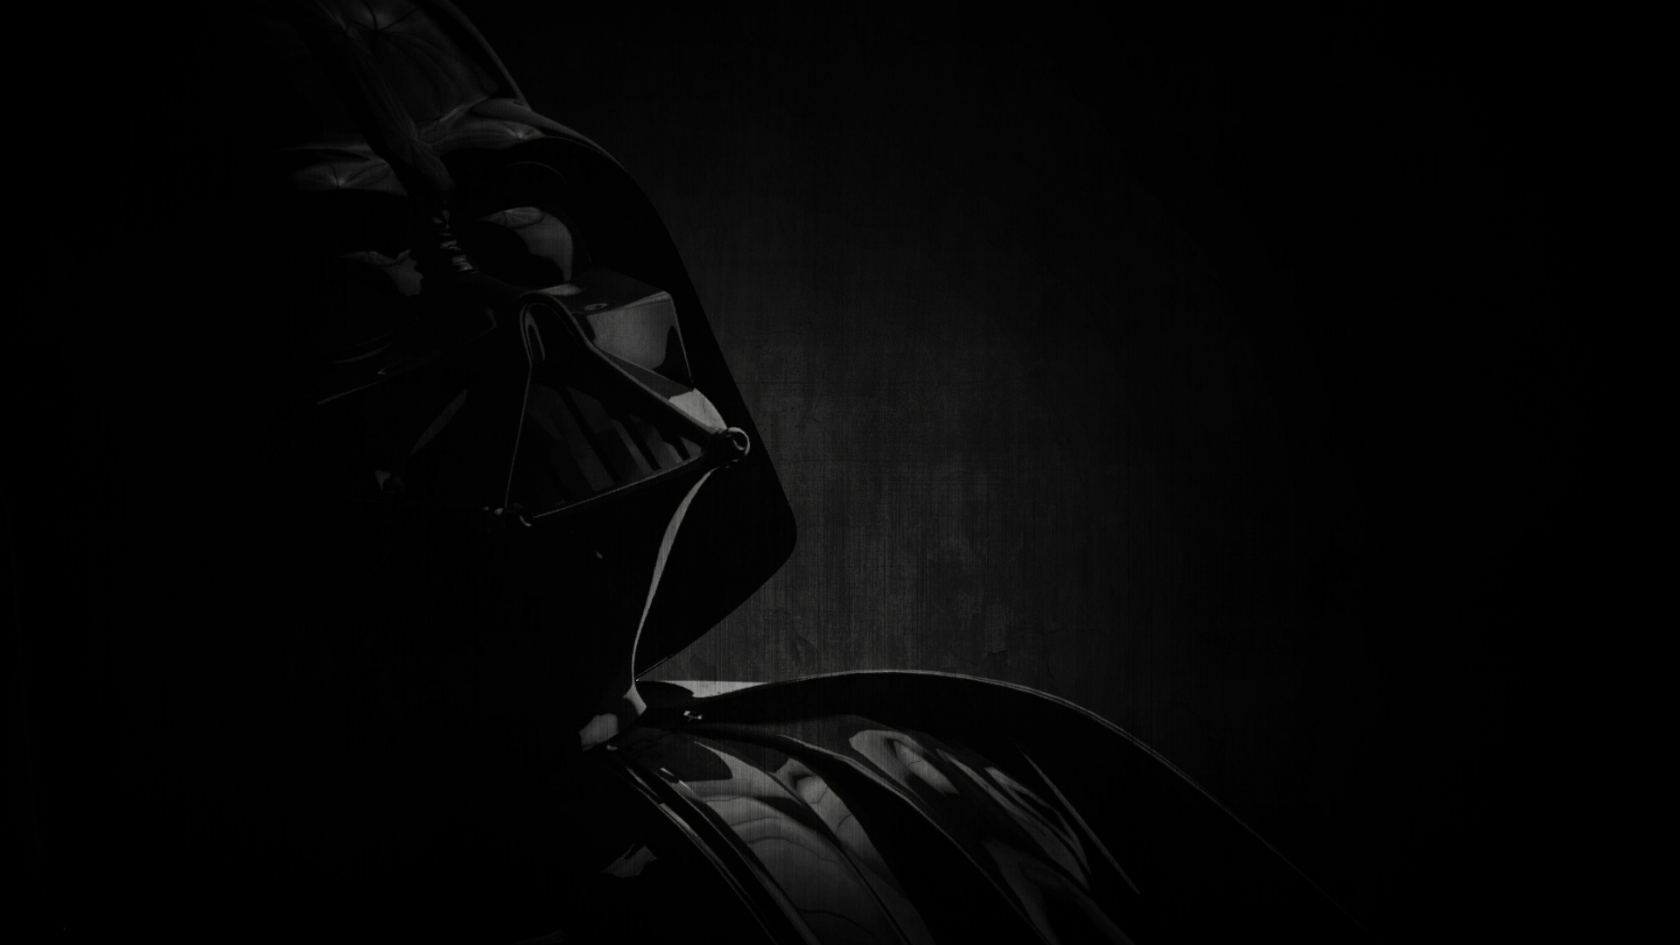 Darth Vader Character, for 1680 x 945 HDTV resolution